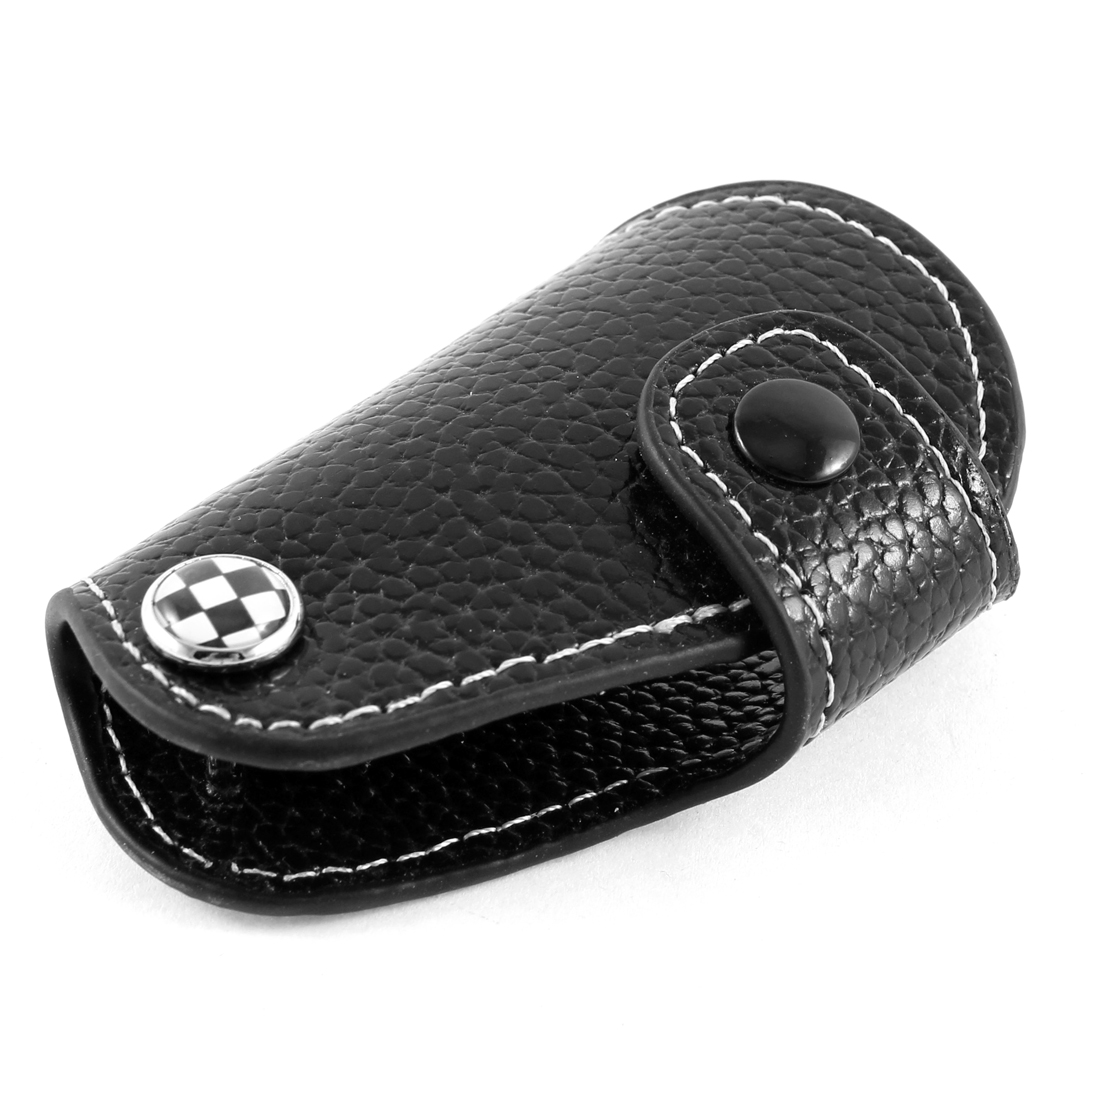 Black Faux Leather Car Key Remote Control Carry Bag for BMW Mini Cooper